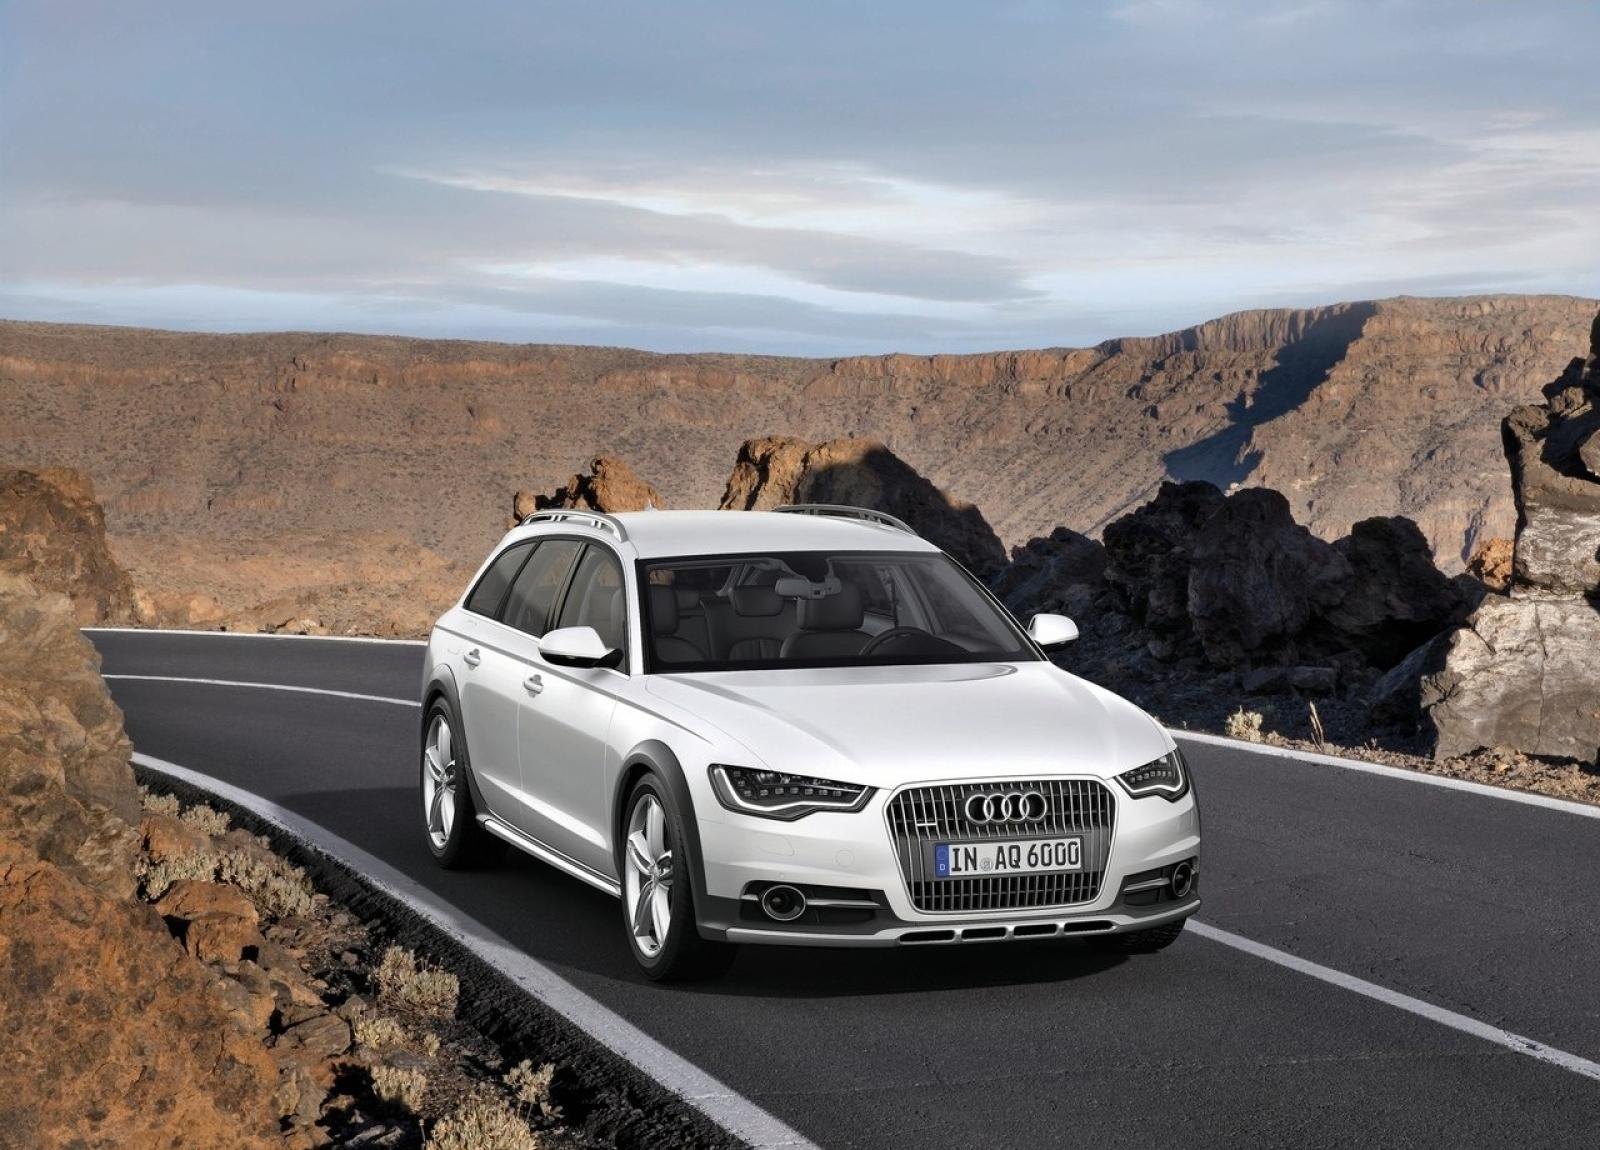 Audi A6 Allroad HD Wallpapers | The World of Audi